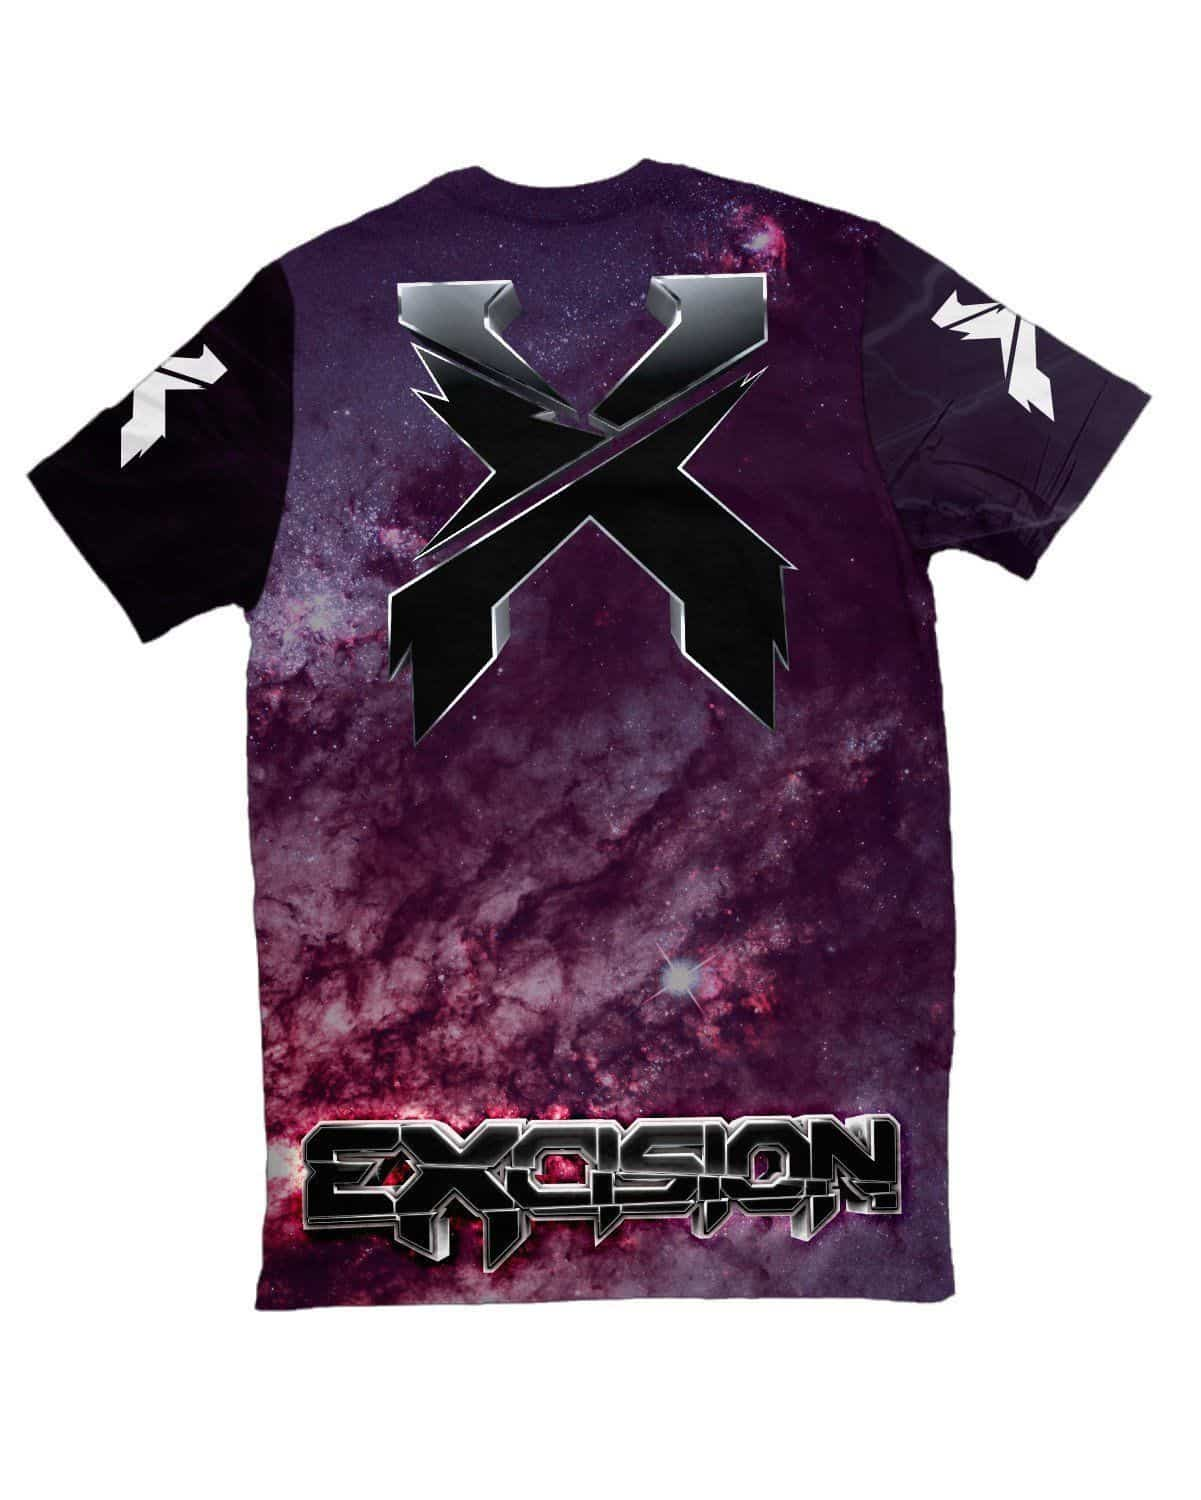 Excision Shambhala Mix 2016 Unisex Tee - Galaxy Version